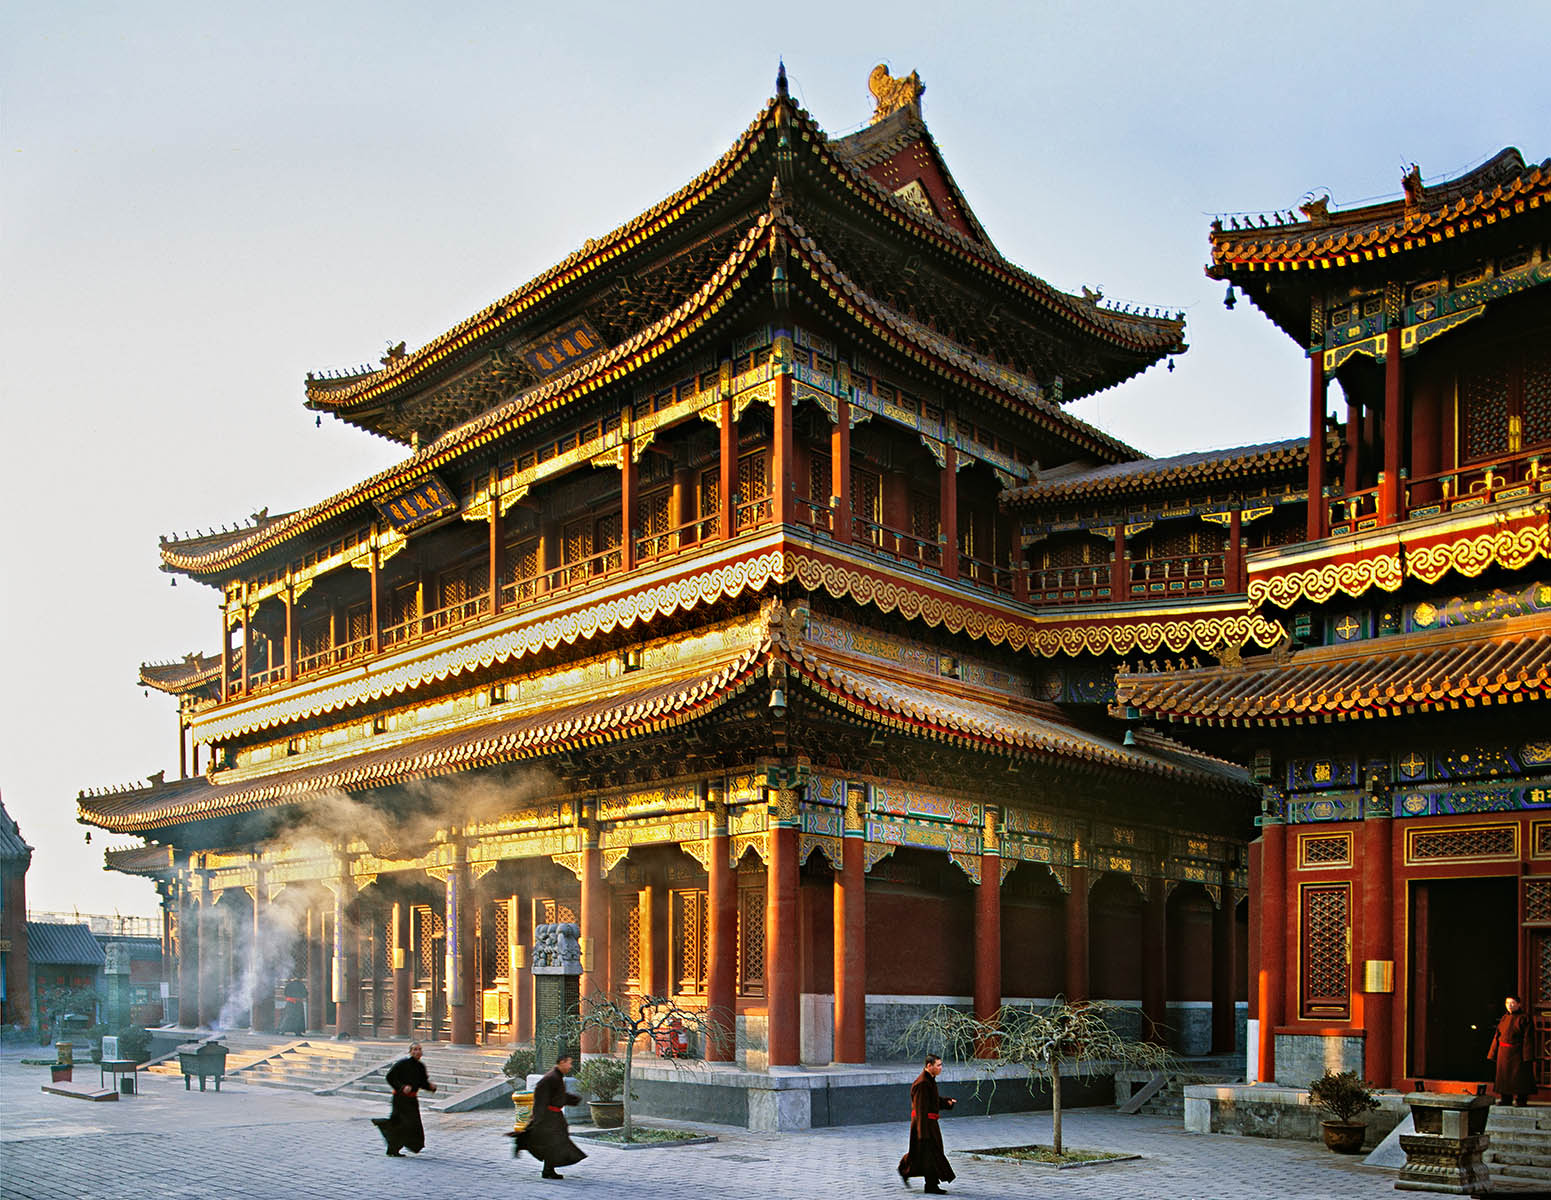 Temple of Bliss - Harbin, North China